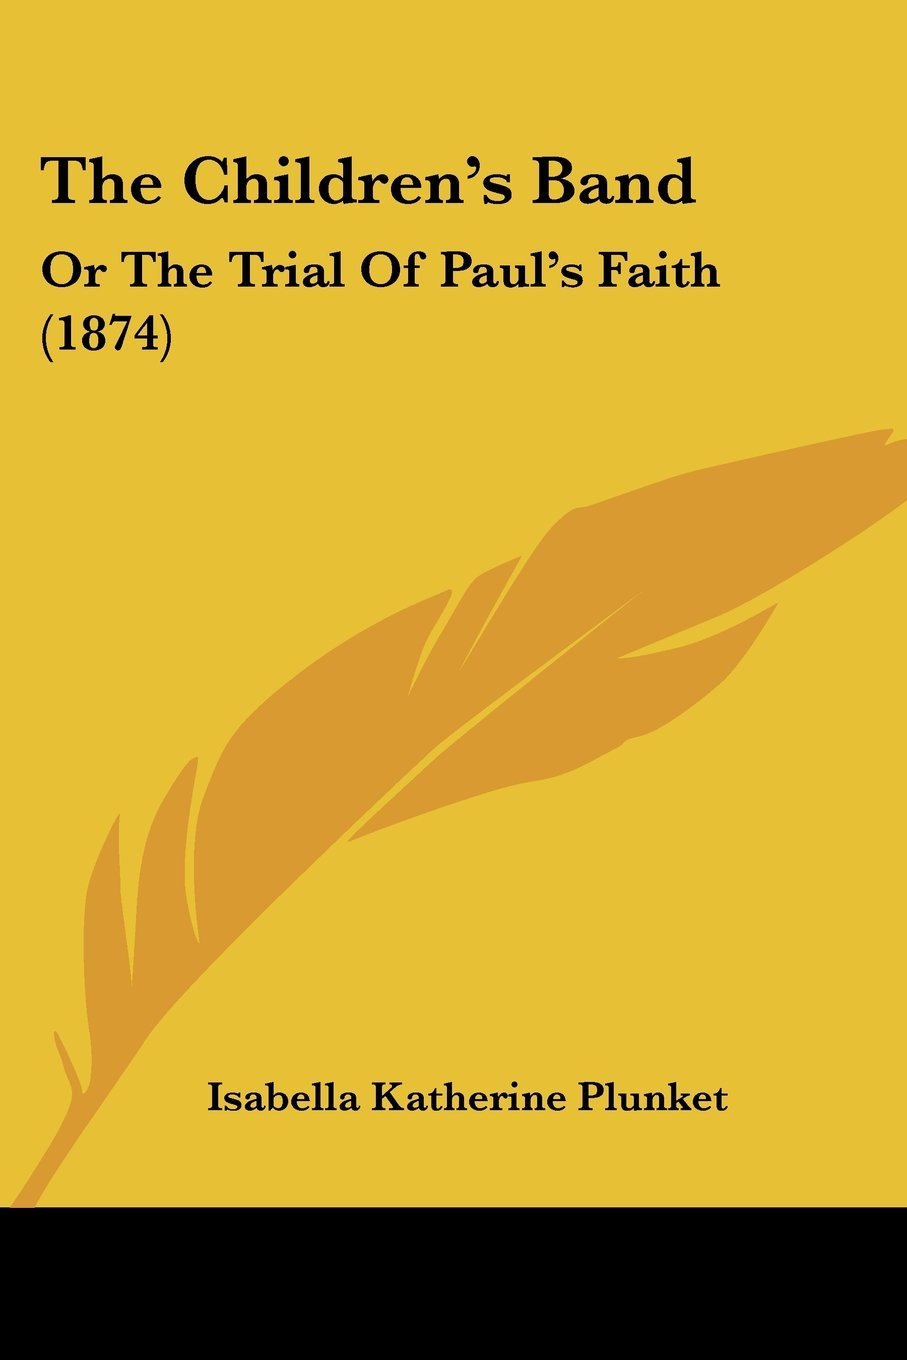 The Children's Band: Or The Trial Of Paul's Faith (1874) ebook